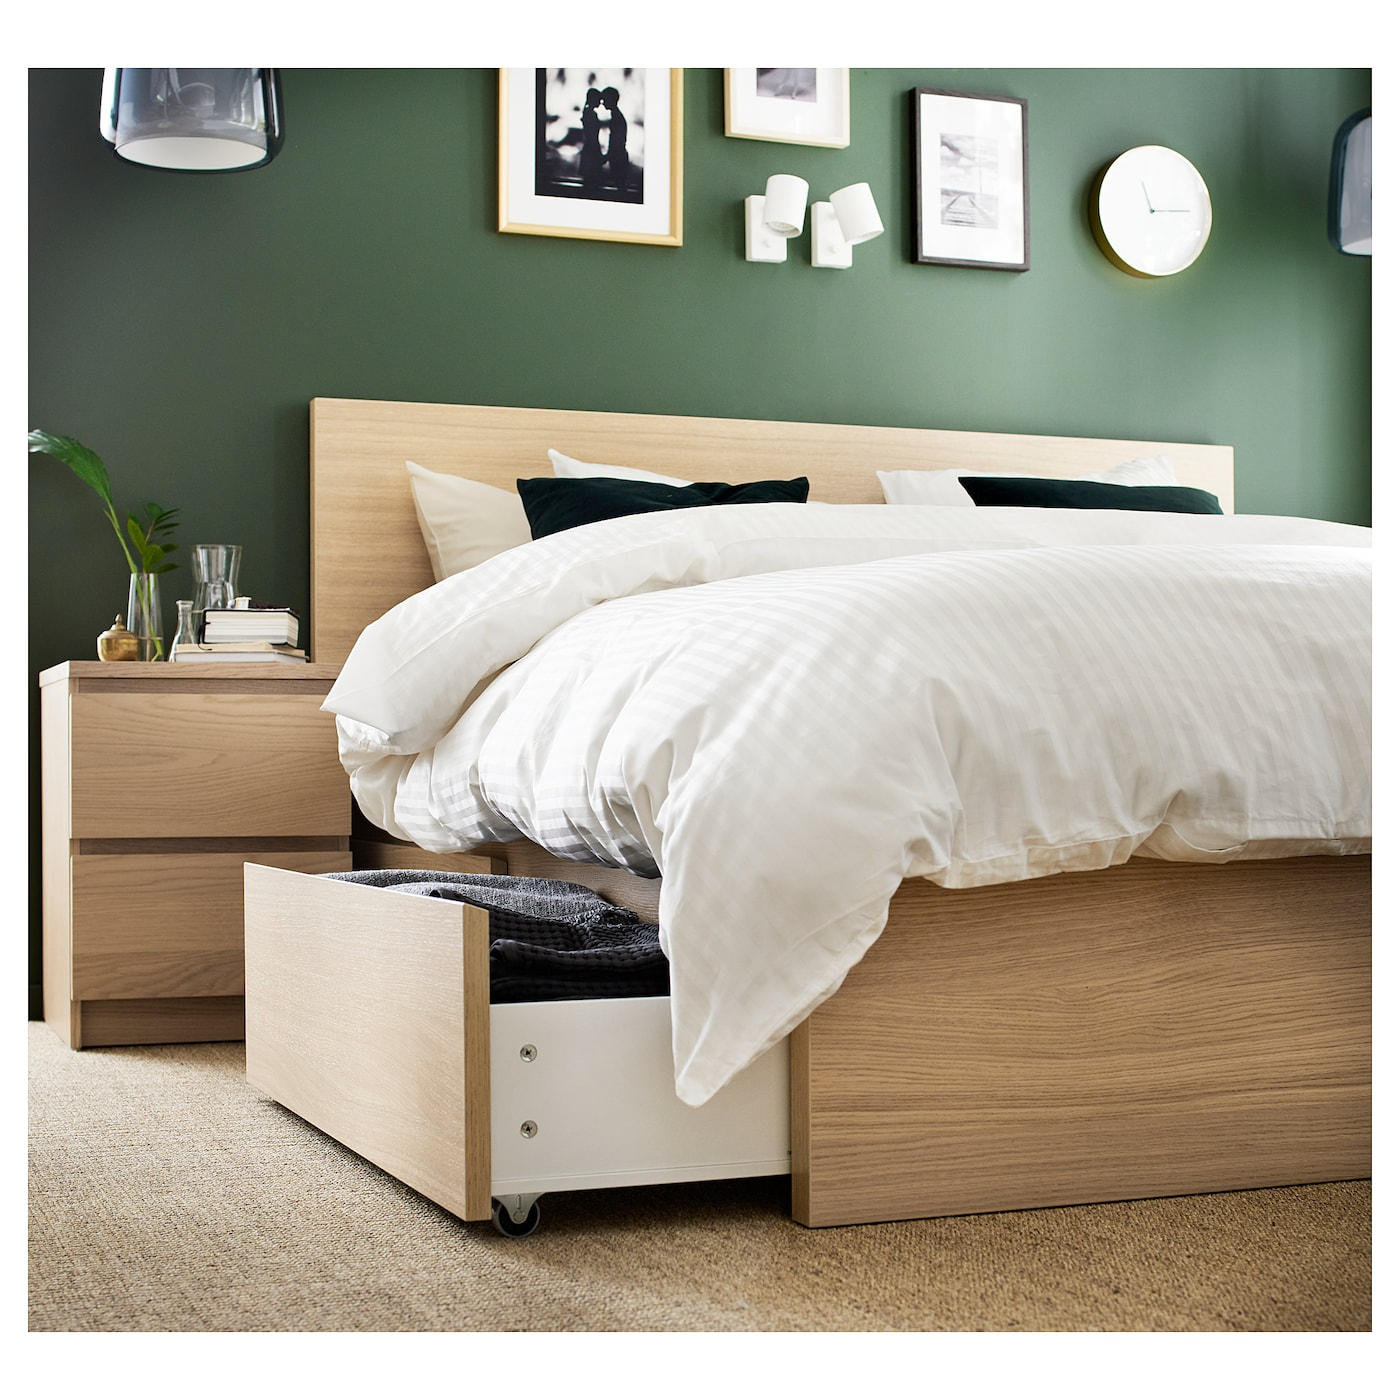 Malm Bed Frame High W 2 Storage Boxes White Stained Oak Veneer Double Ikea